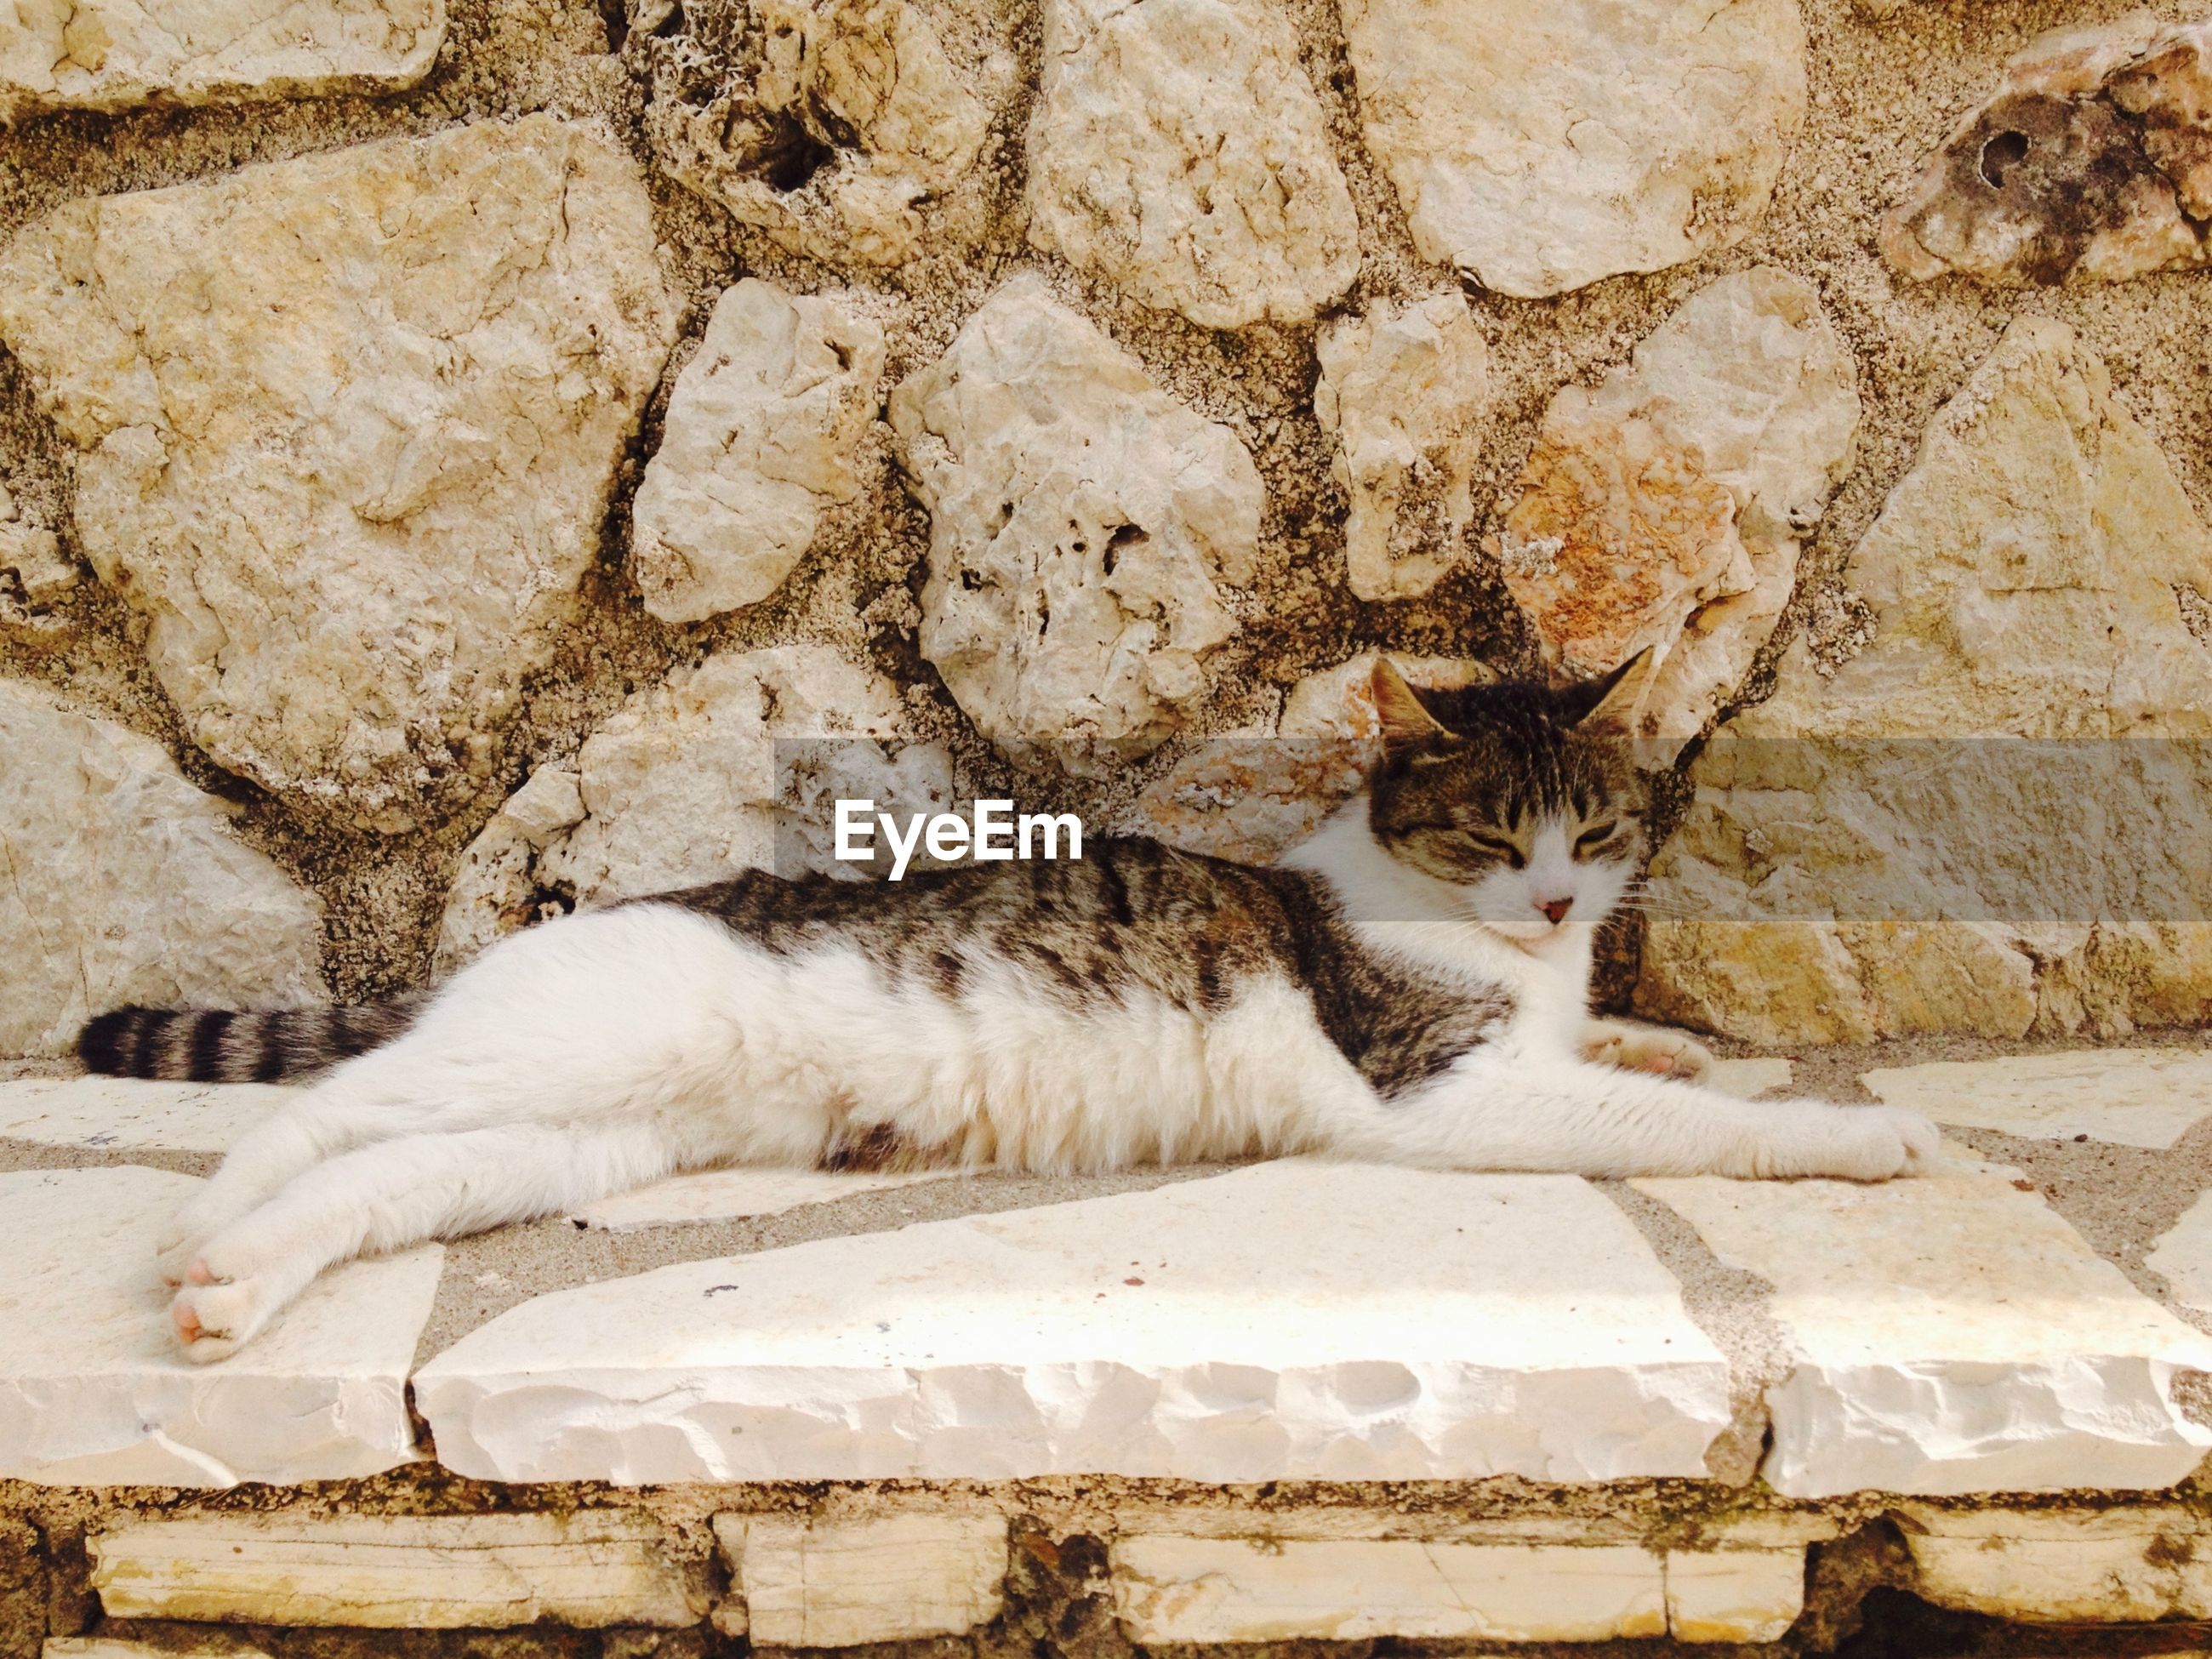 Cat relaxing against wall